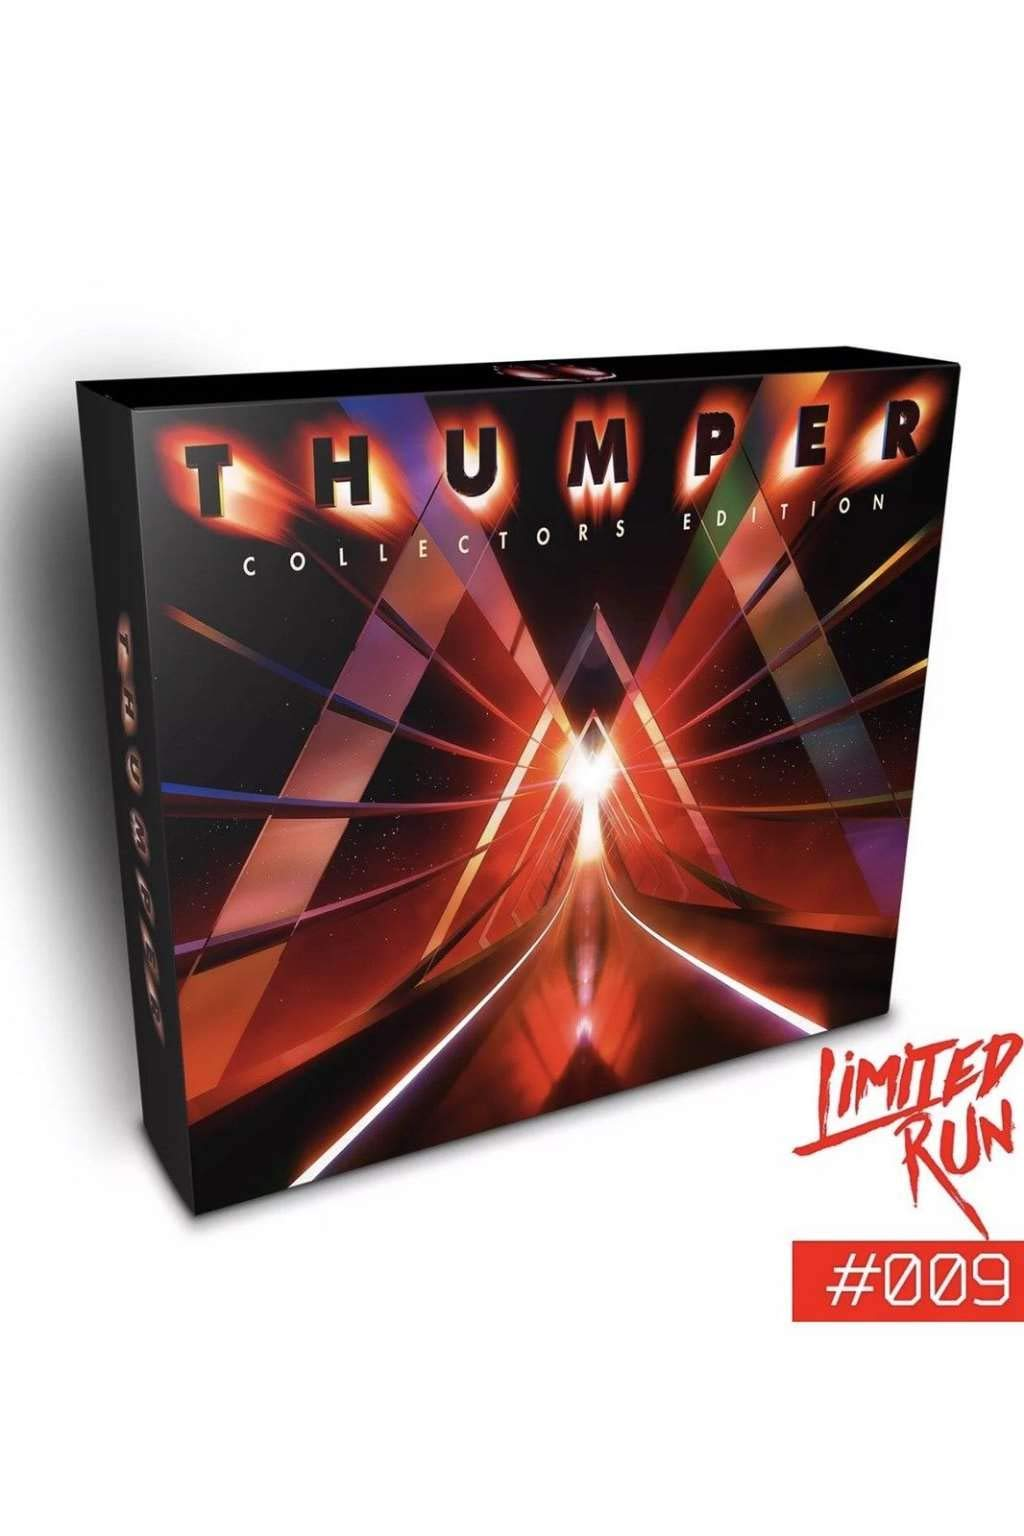 Thumper Collector's Edition - (Limited Run #9) - Nintendo Switch